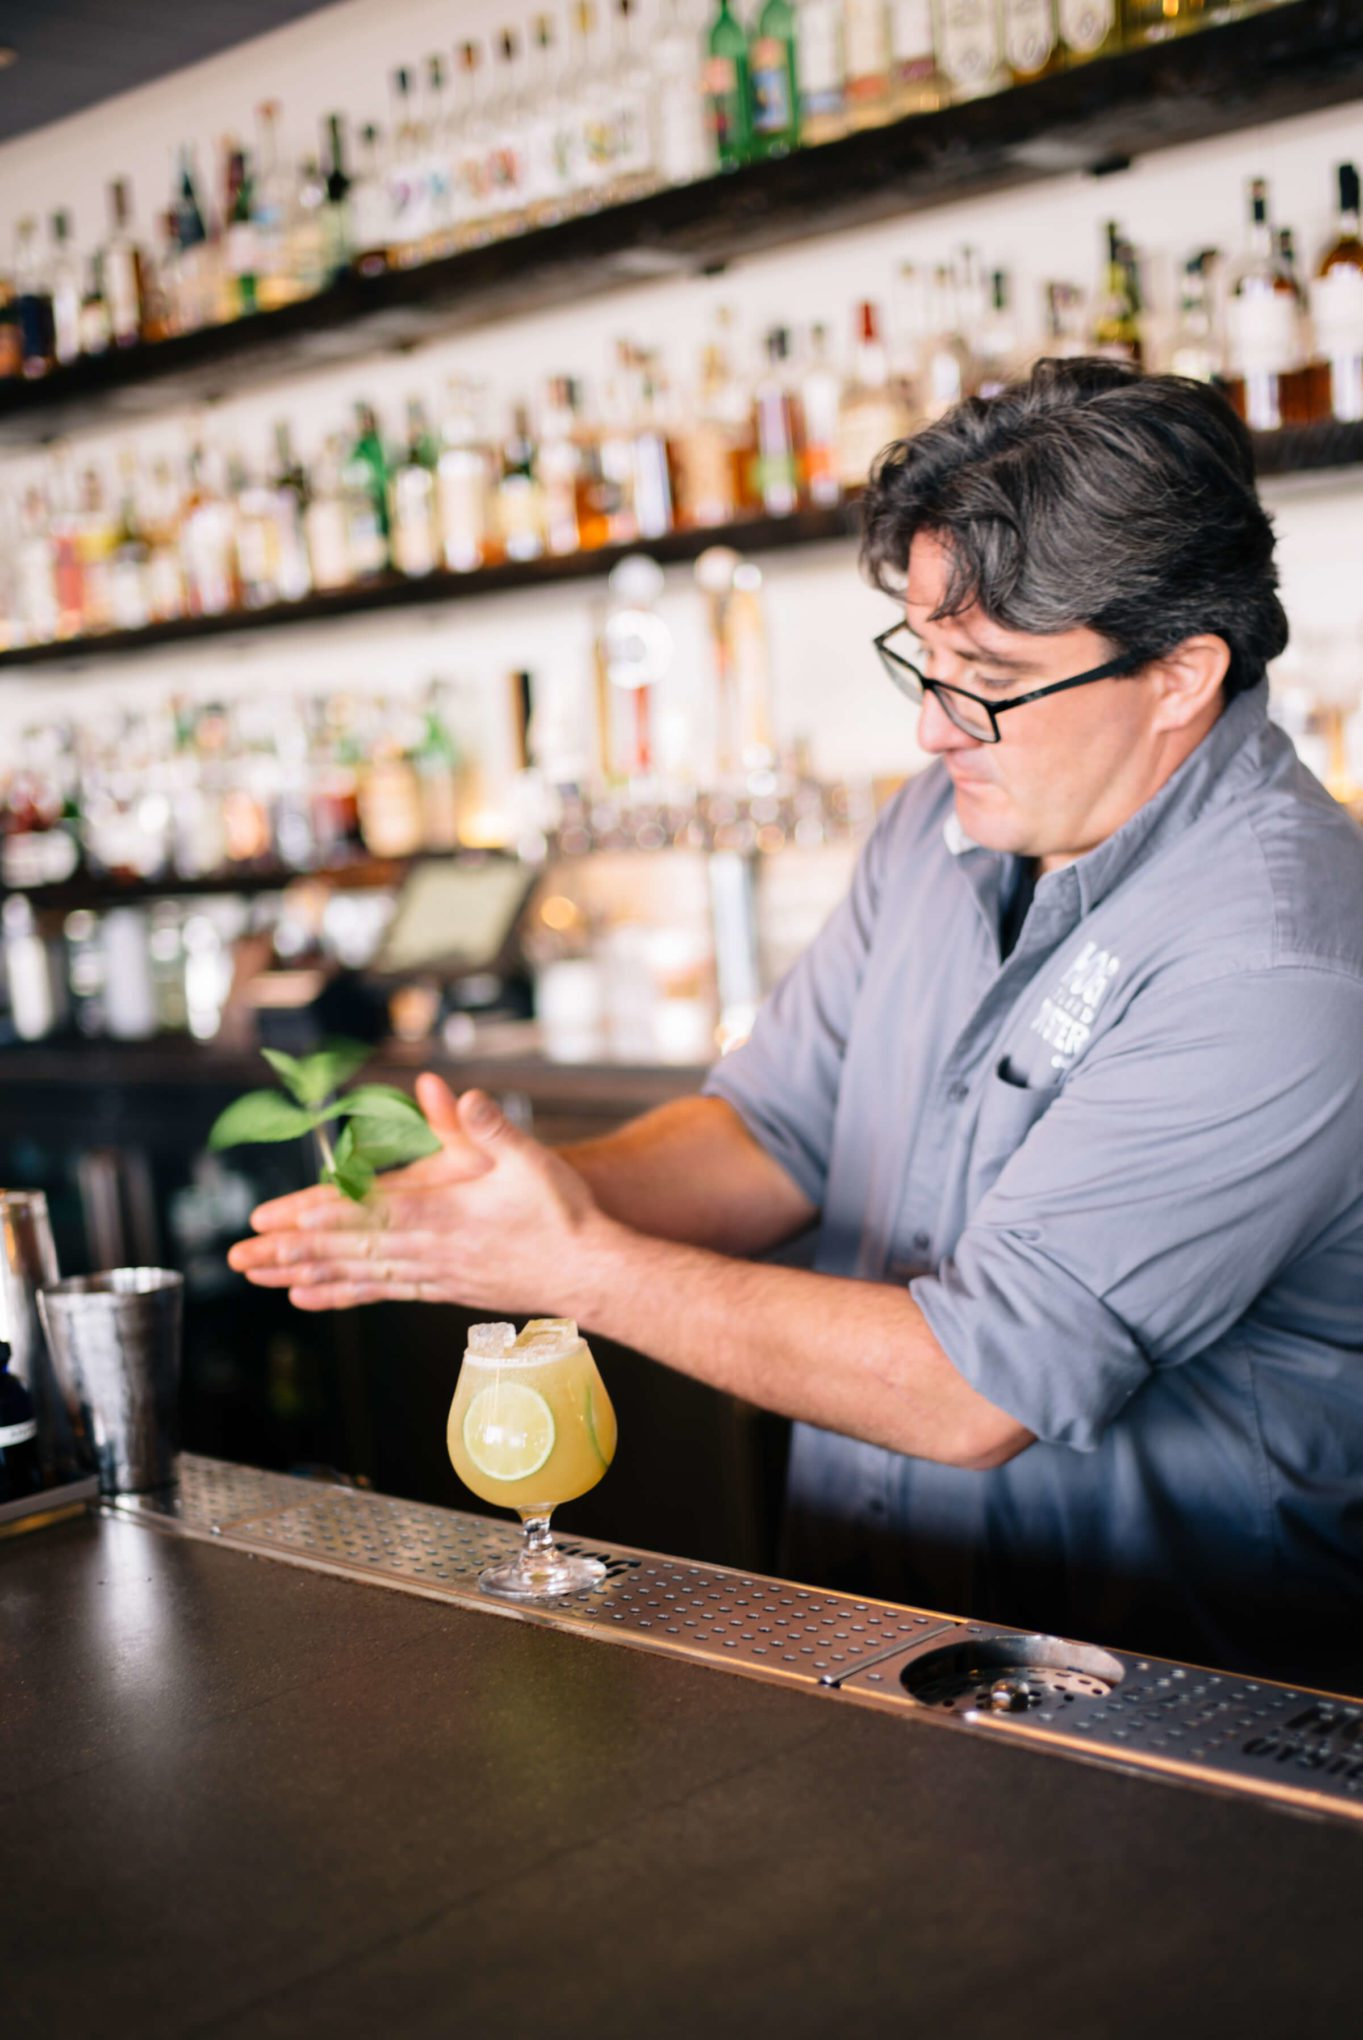 Mint garnish for the Summer Cocktails: Hog Island Saul Ranella Sacred Cenote Mezcal Amaro Cocktail Recipe, restaurant recipe, The Taste SF